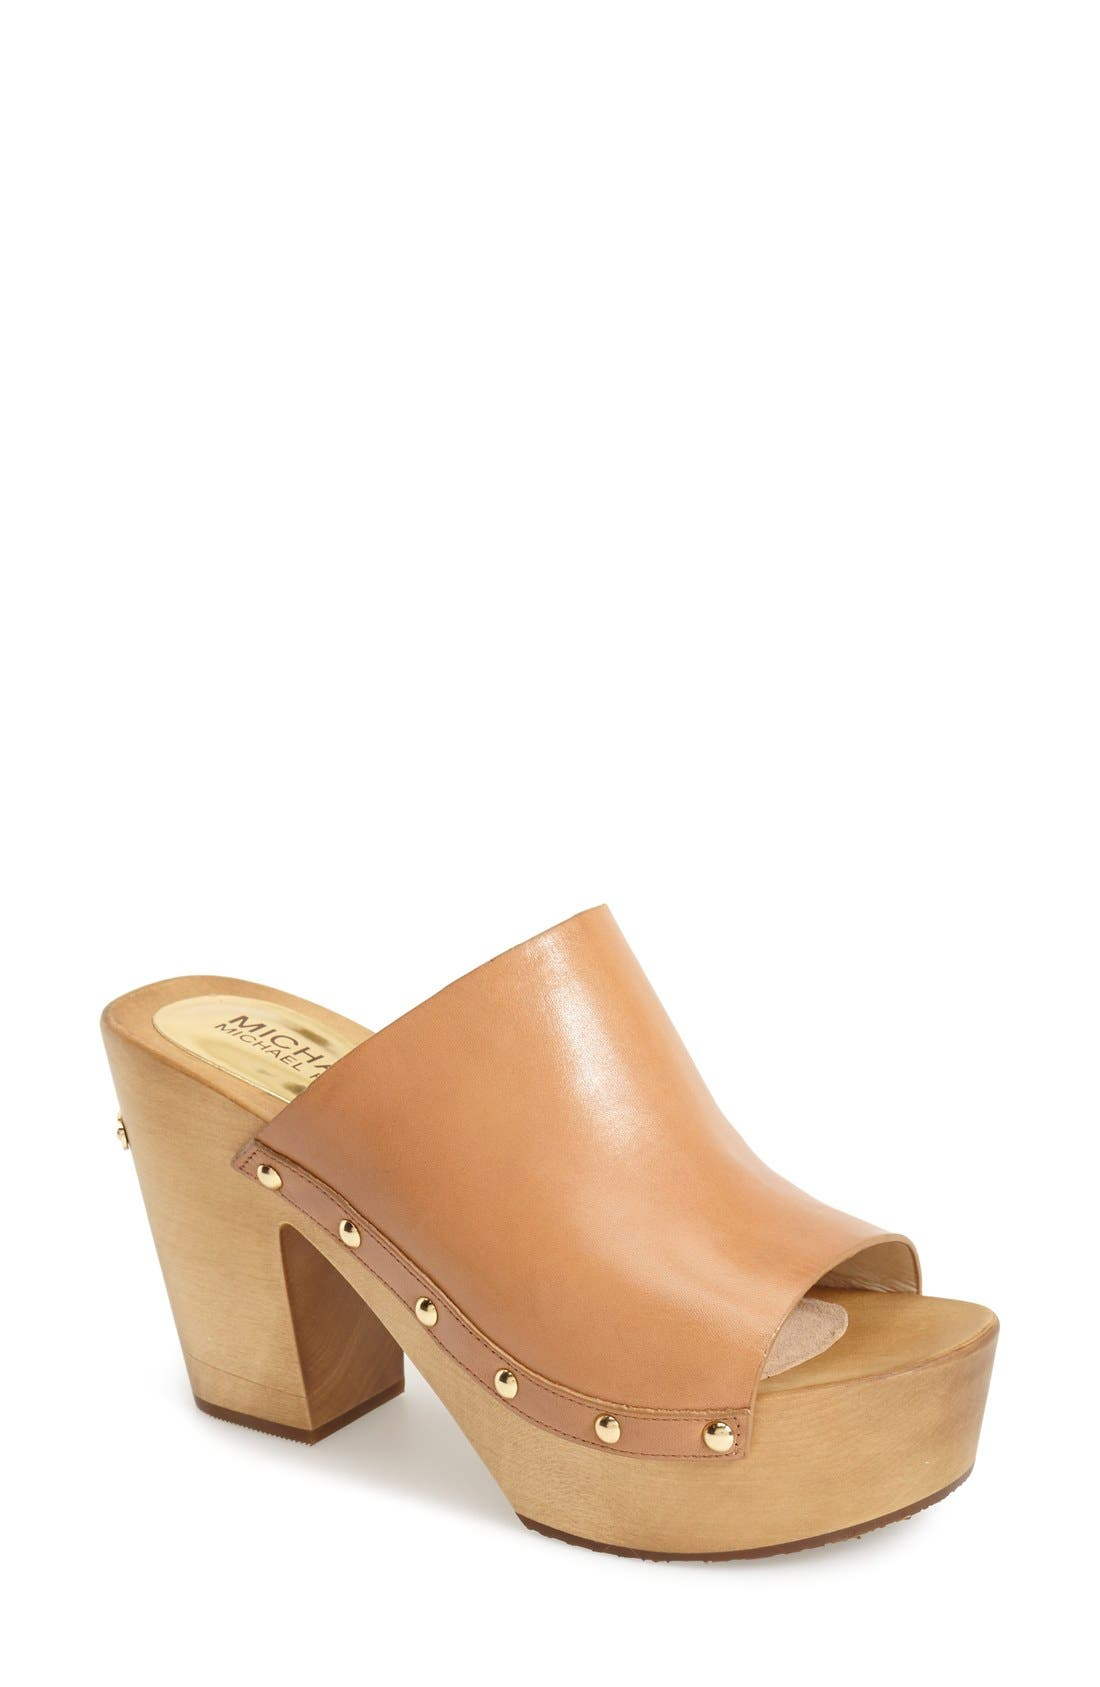 Main Image - MICHAEL Michael Kors 'Beatrice' Studded Open Toe Clog (Women)